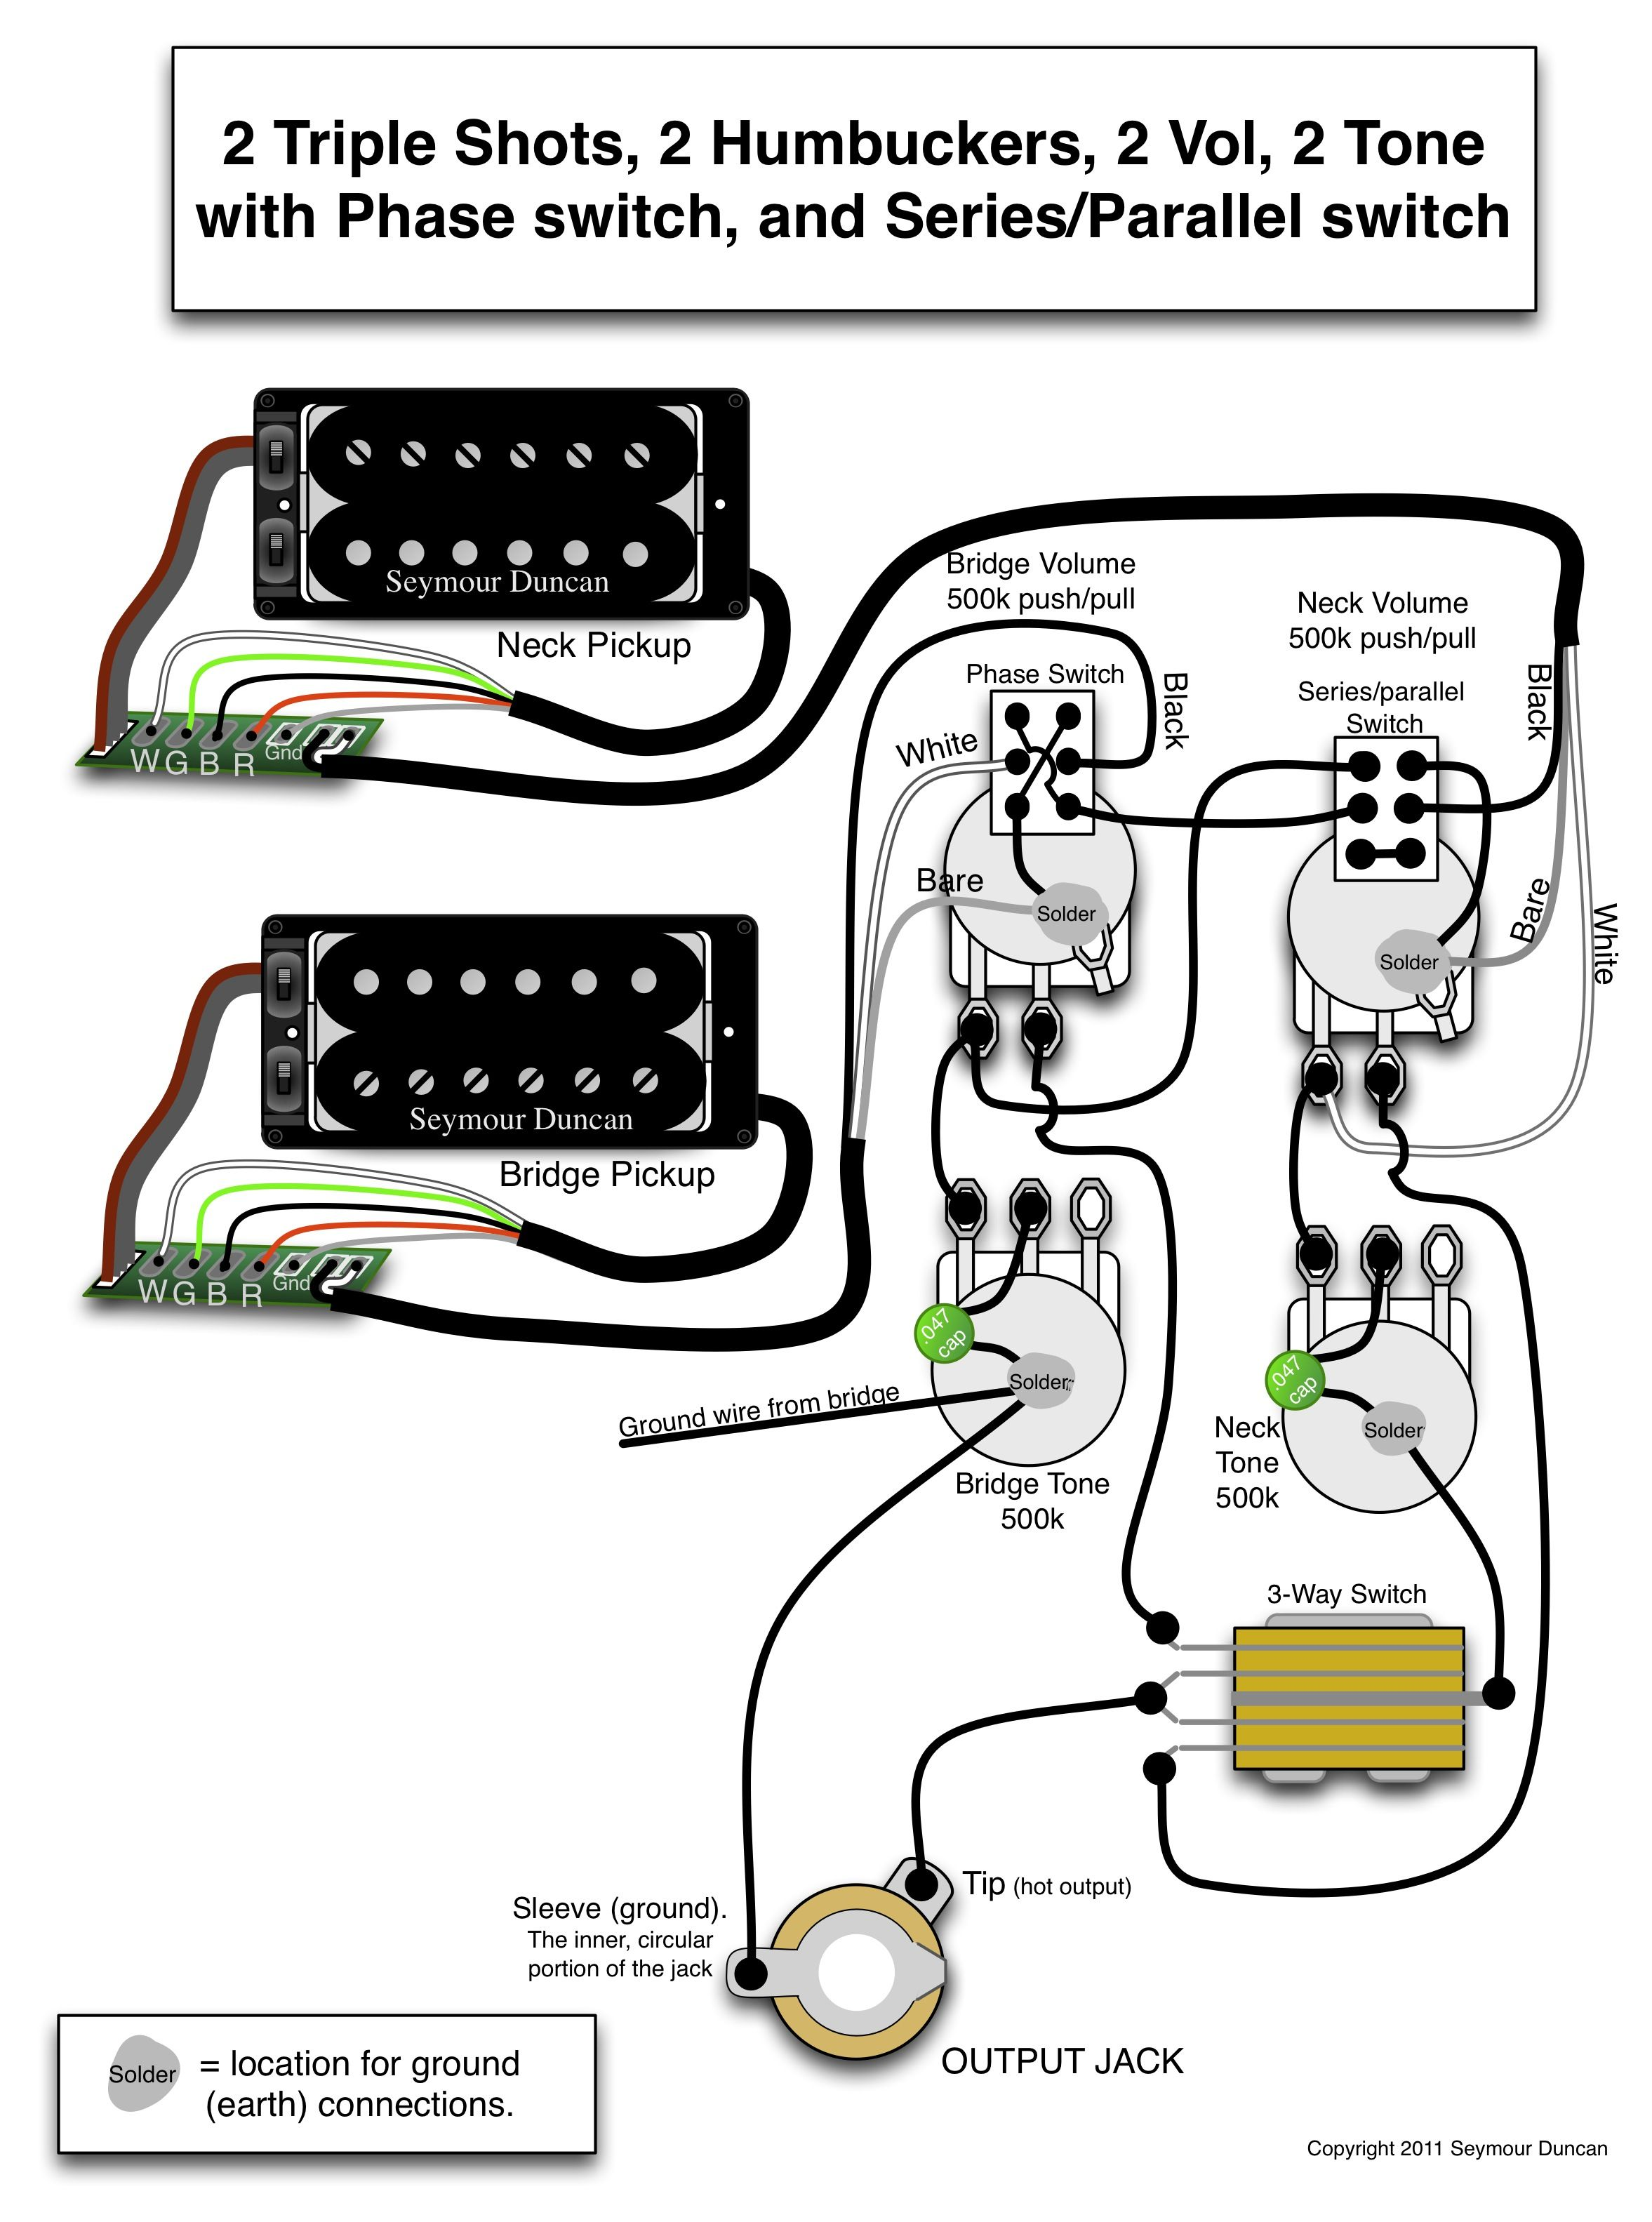 14dc4408abcf3c075a00cd280c1ea7ec seymour duncan wiring diagram 2 triple shots, 2 humbuckers, 2  at creativeand.co